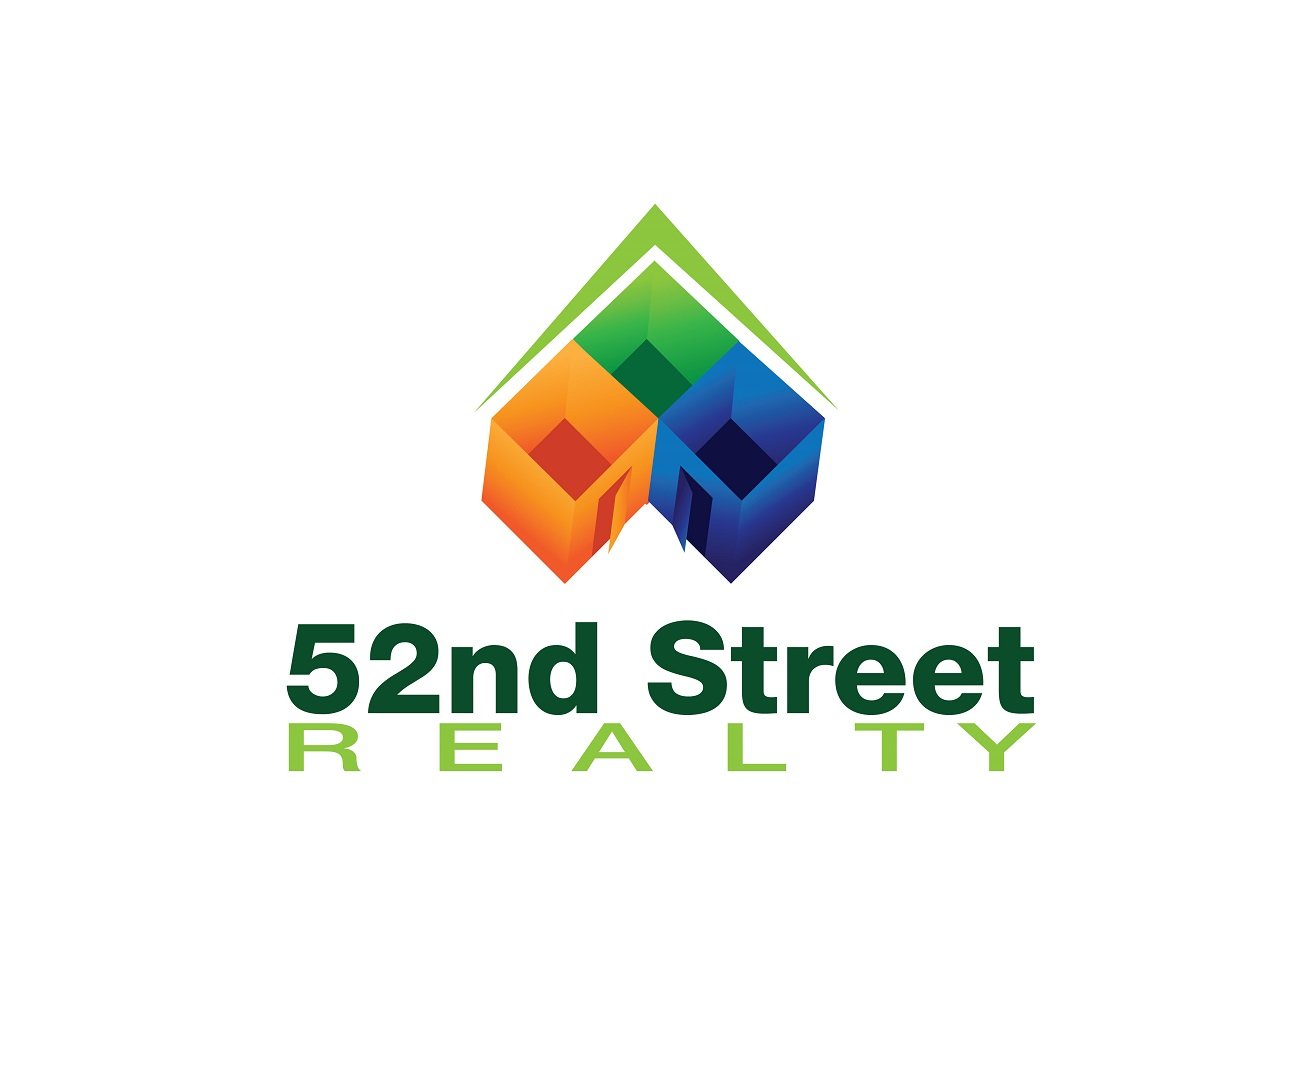 Logo Design by jhunzkie24 - Entry No. 21 in the Logo Design Contest 52nd Street Realty Logo Design.